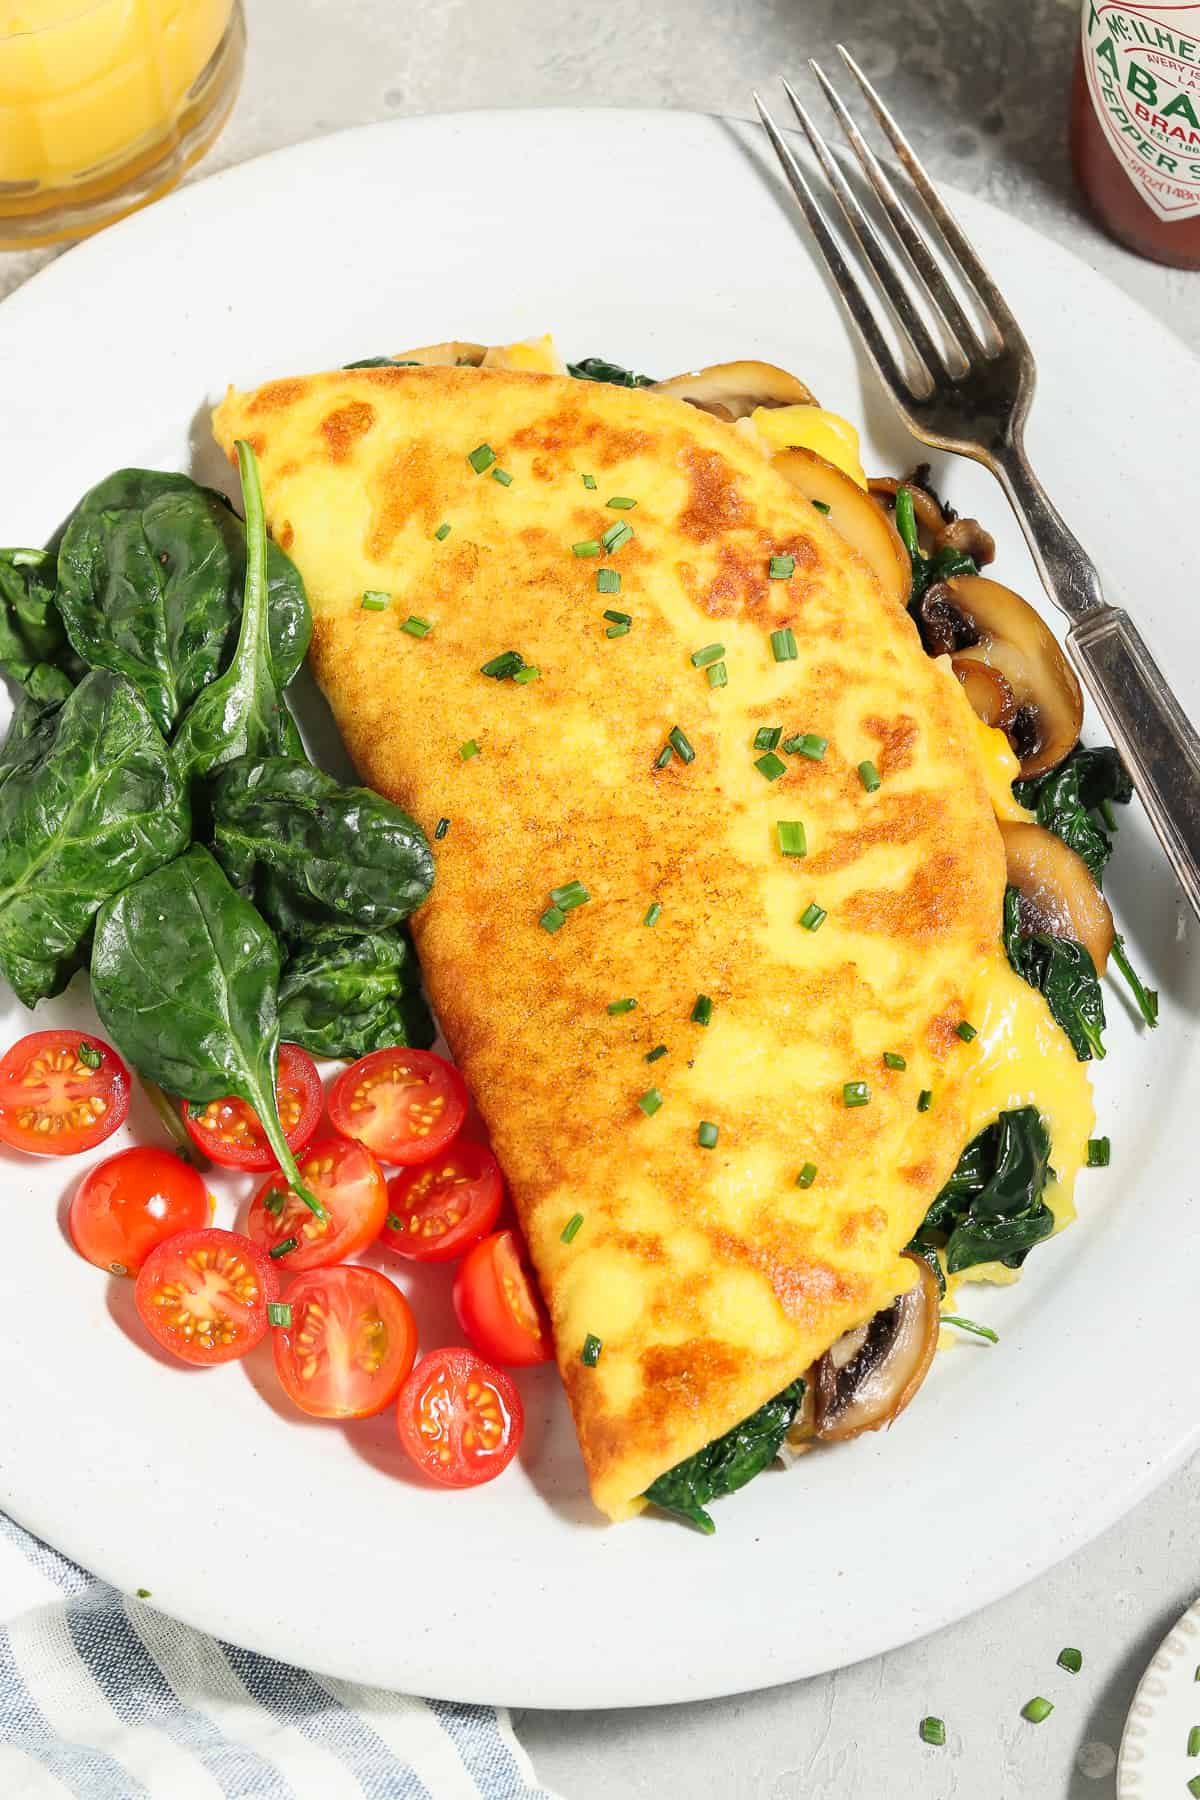 Close up view of fully cooked JUST Egg omelette on a white plate with spinach and tomatoes on the side.